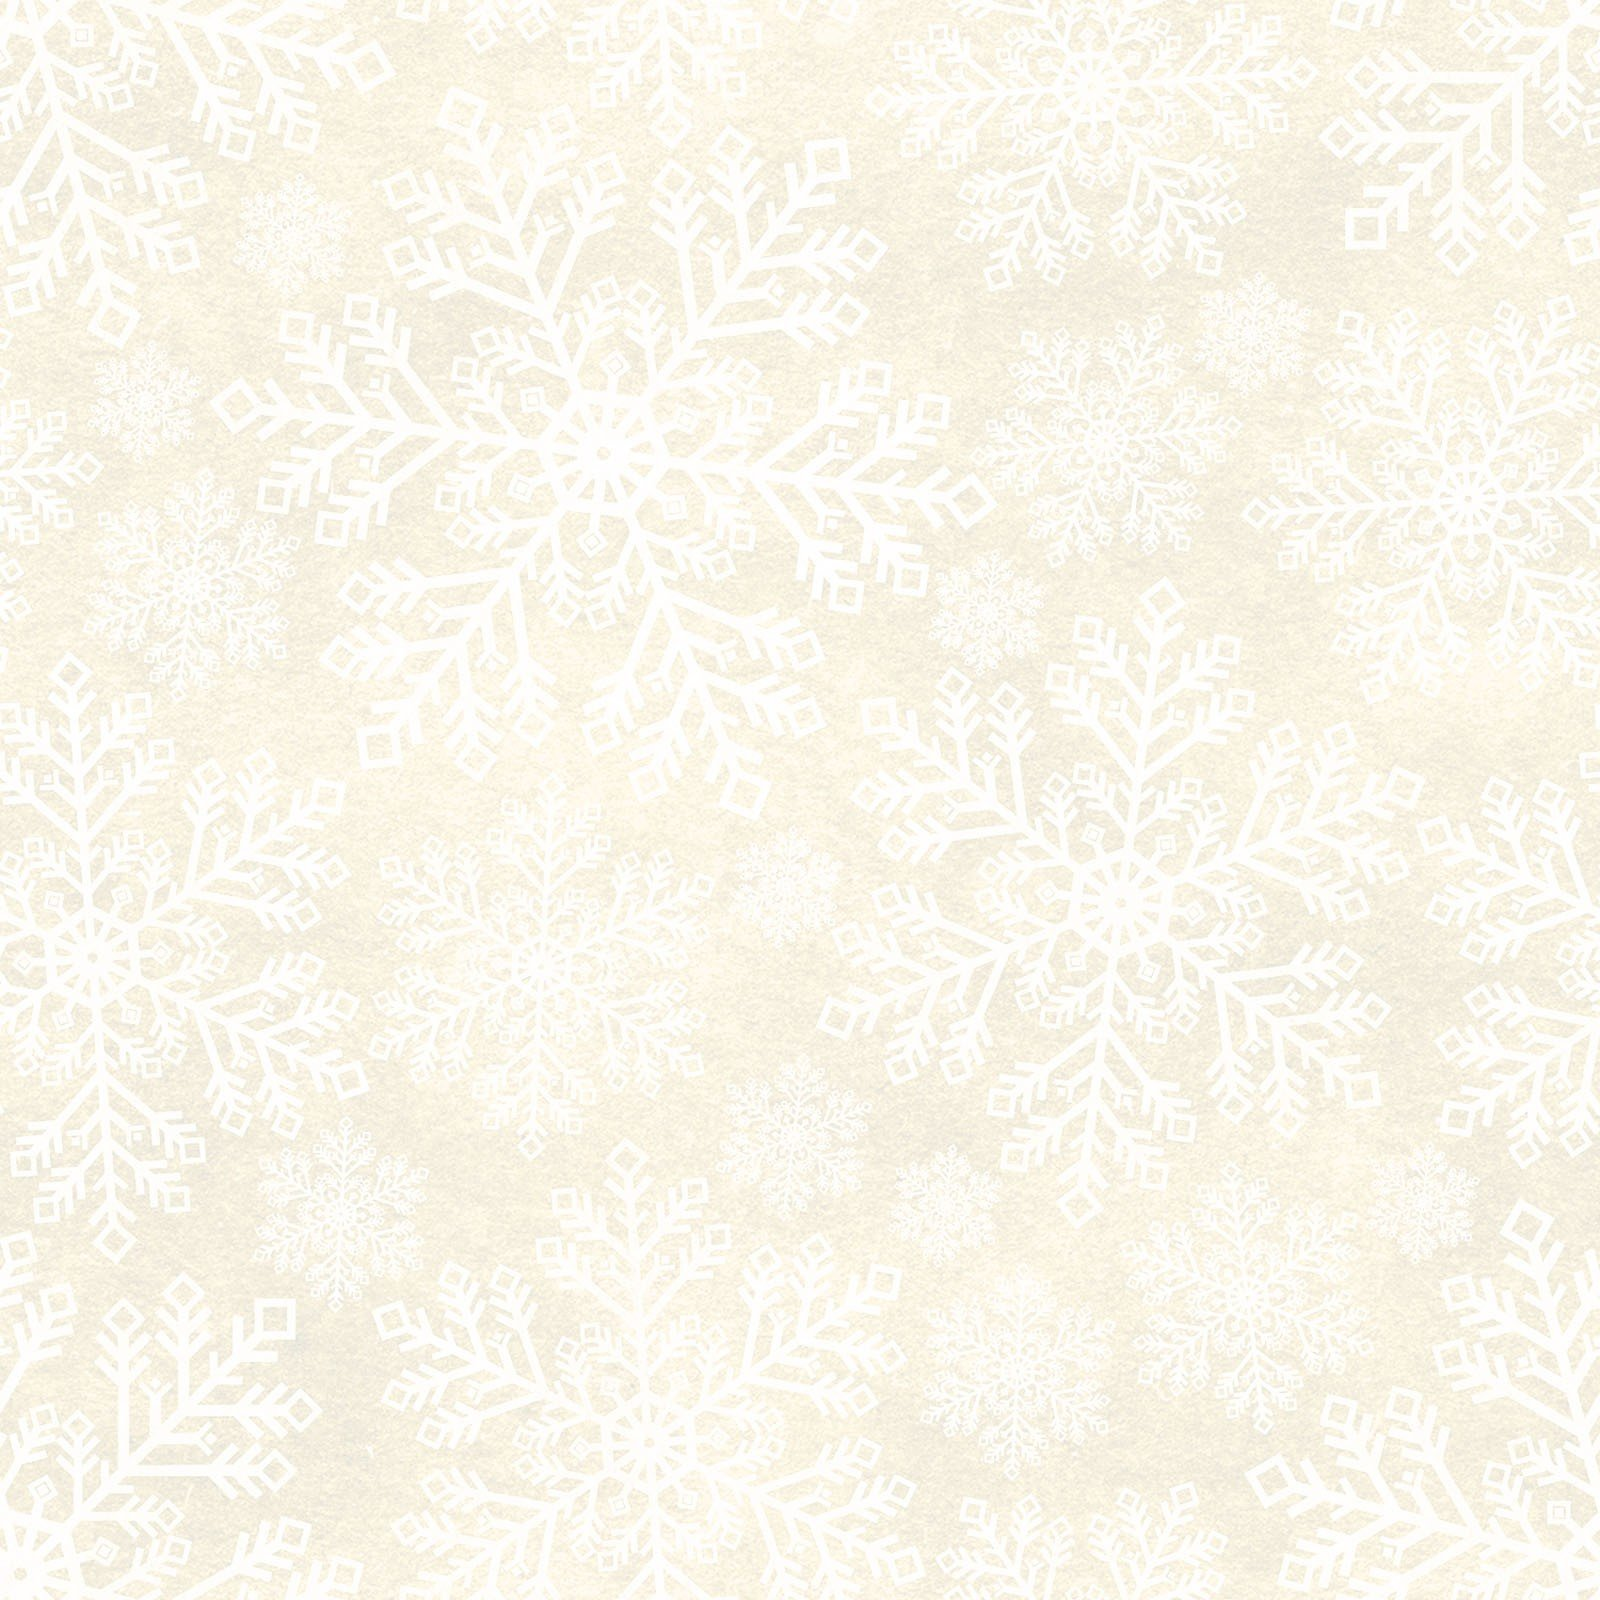 A Poinsettia Winter Cream<br/>In The Beginning 11APW-1